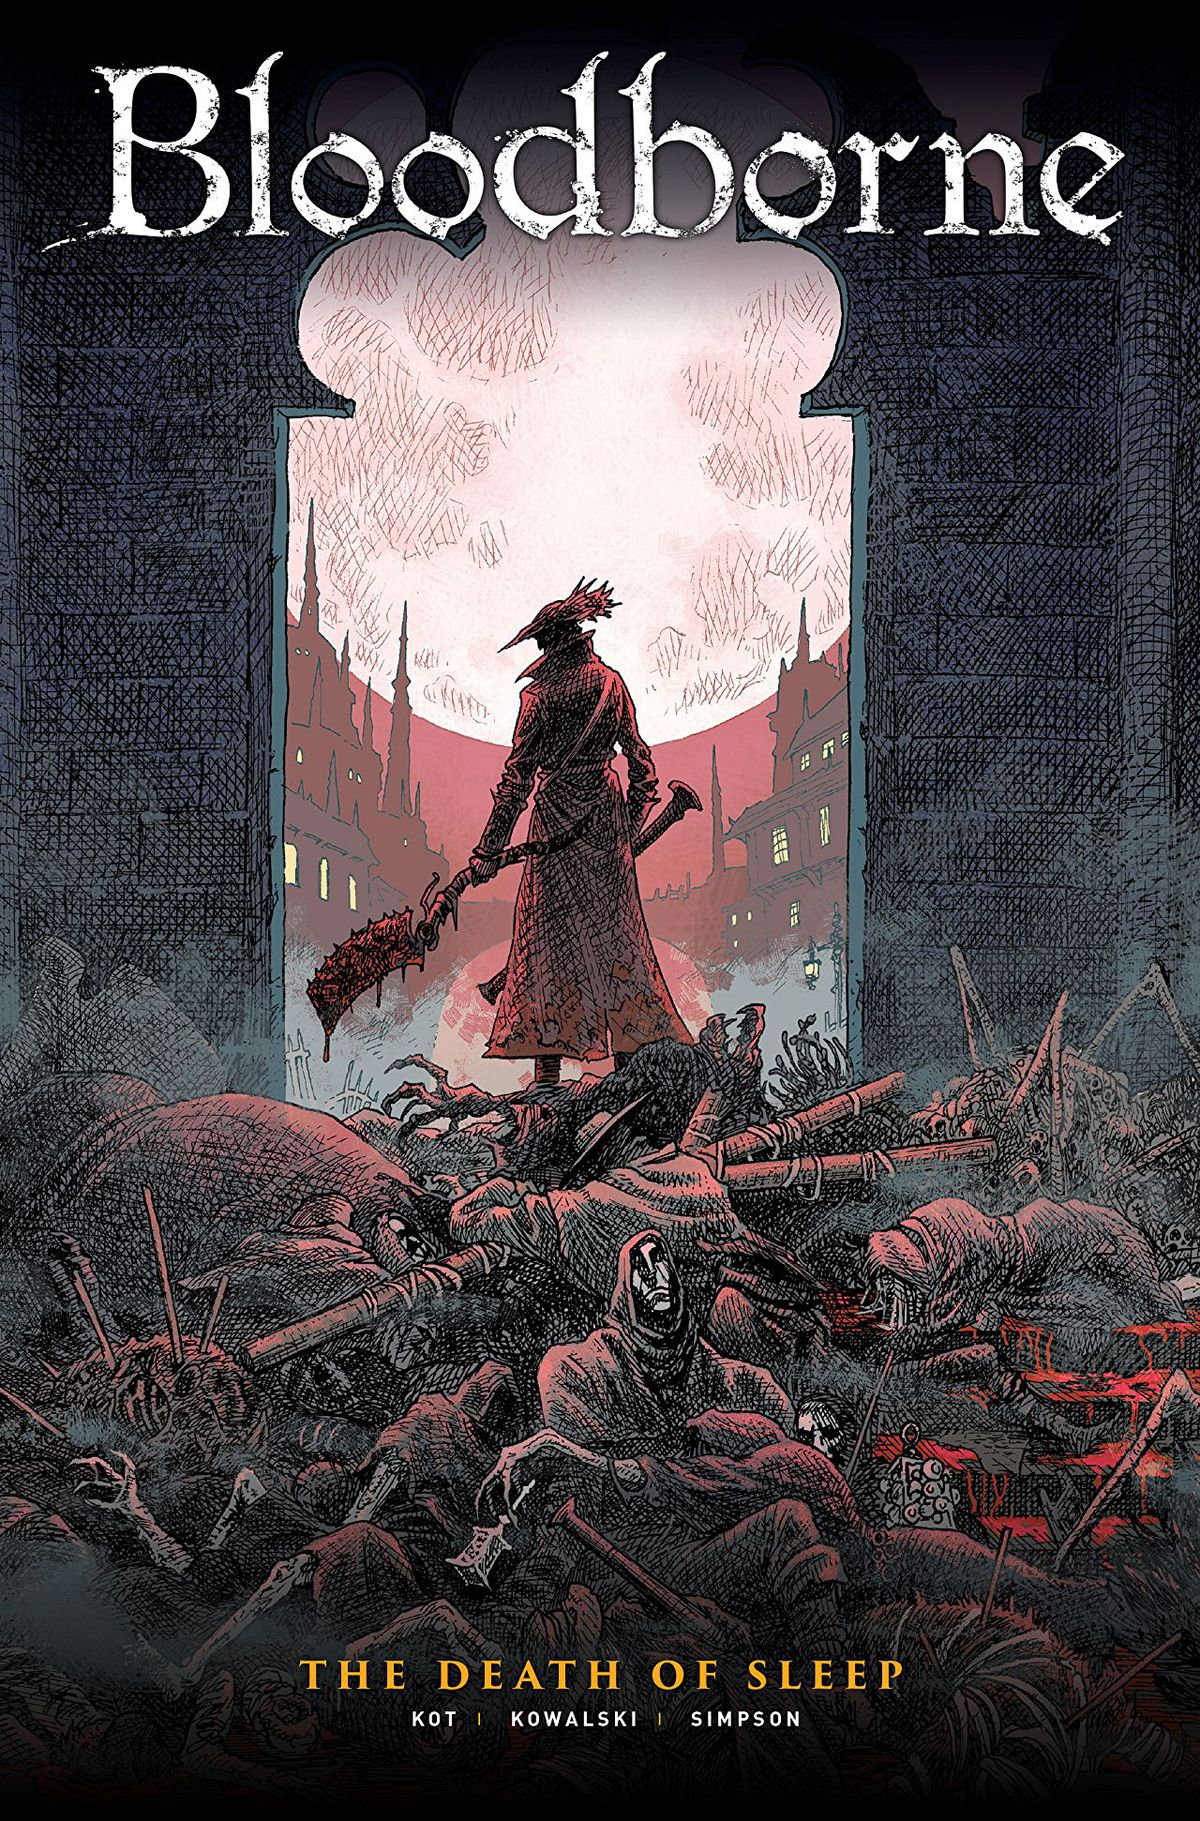 The cover of Bloodborne: The Death of Sleep, from Titan Comics.